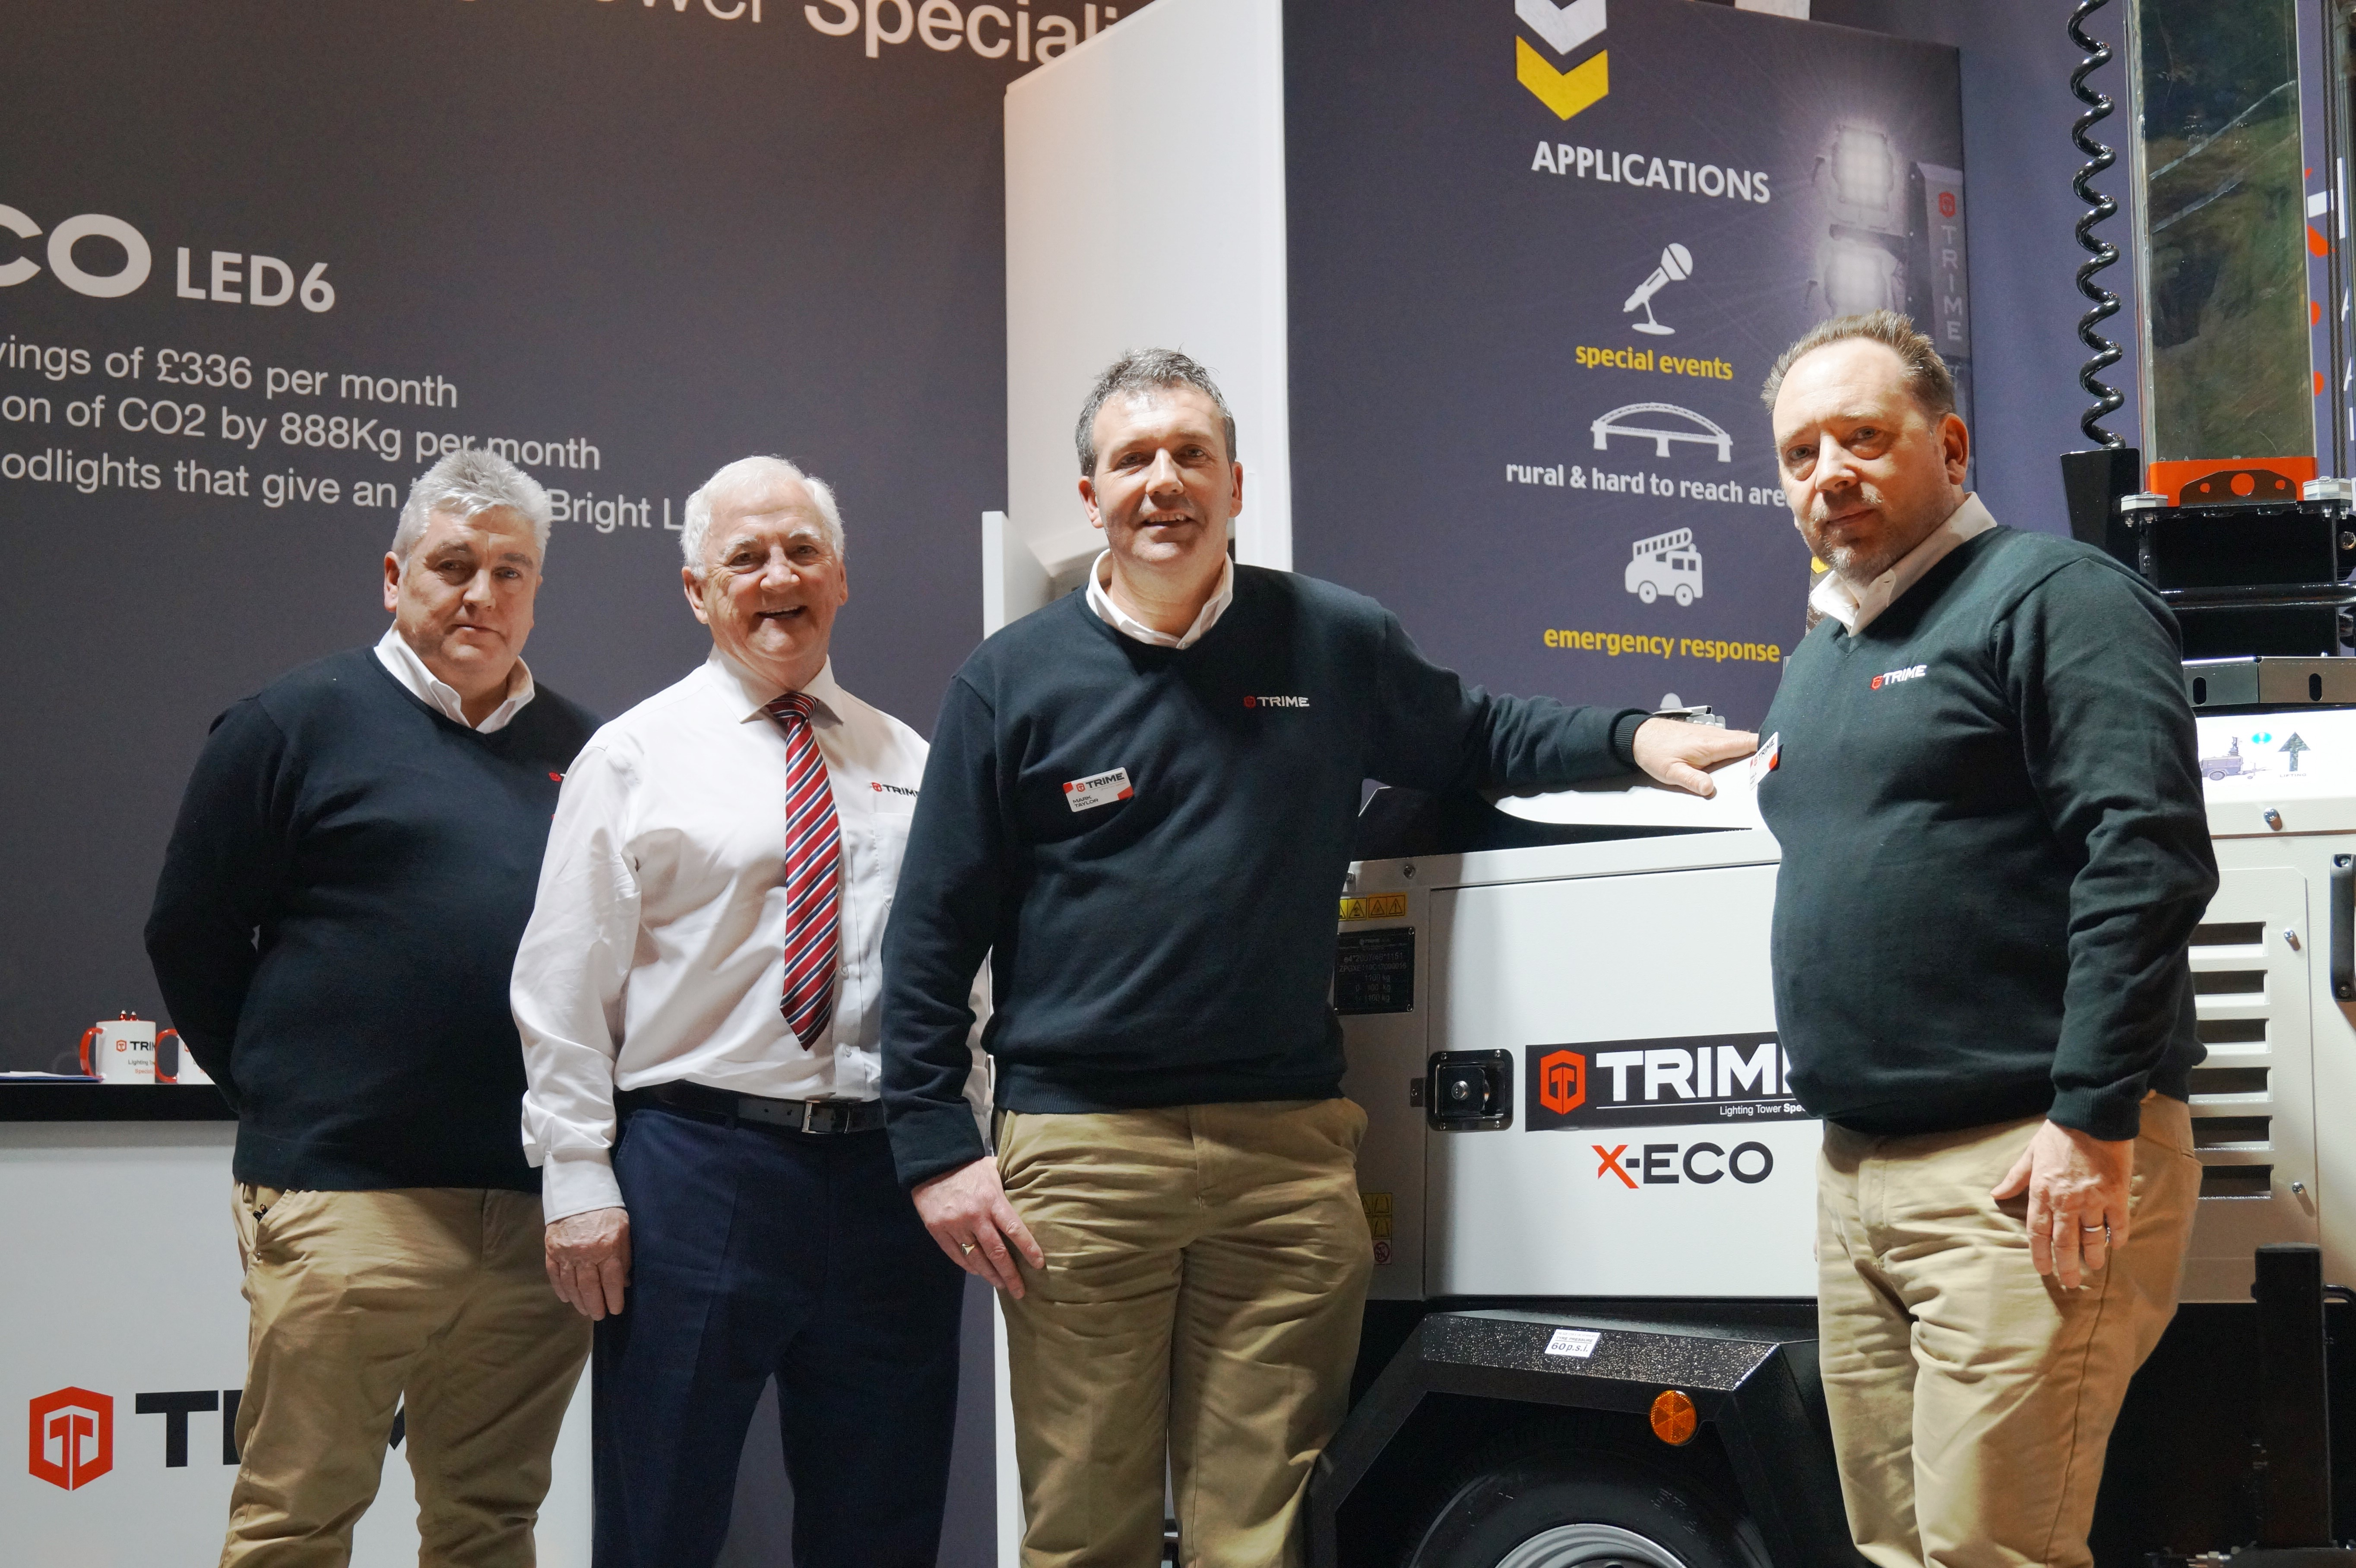 Trime to aim high at the Hire Association Europe Trade Fair and Convention